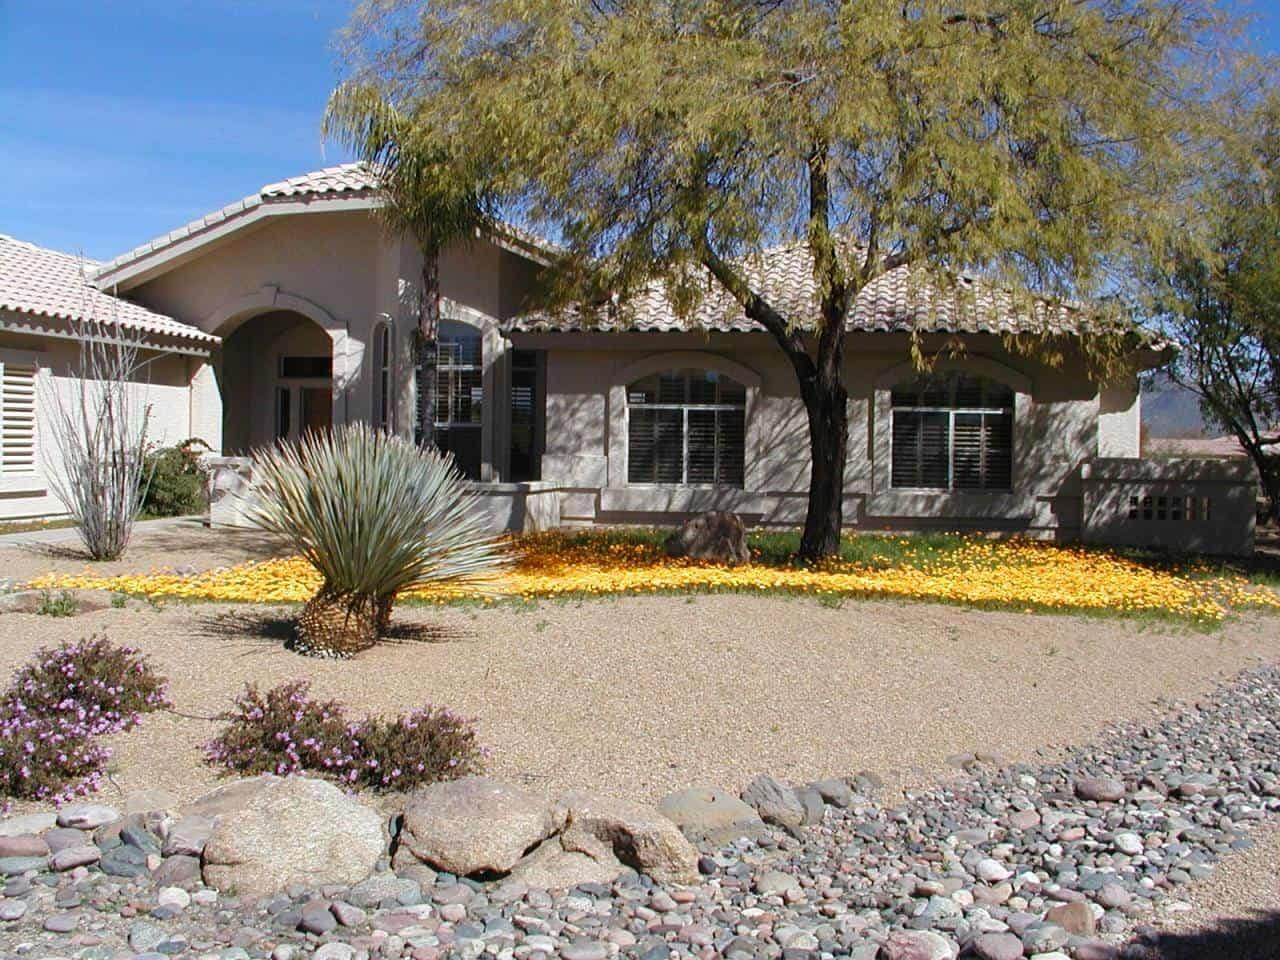 Rio Verde Homes For Sale